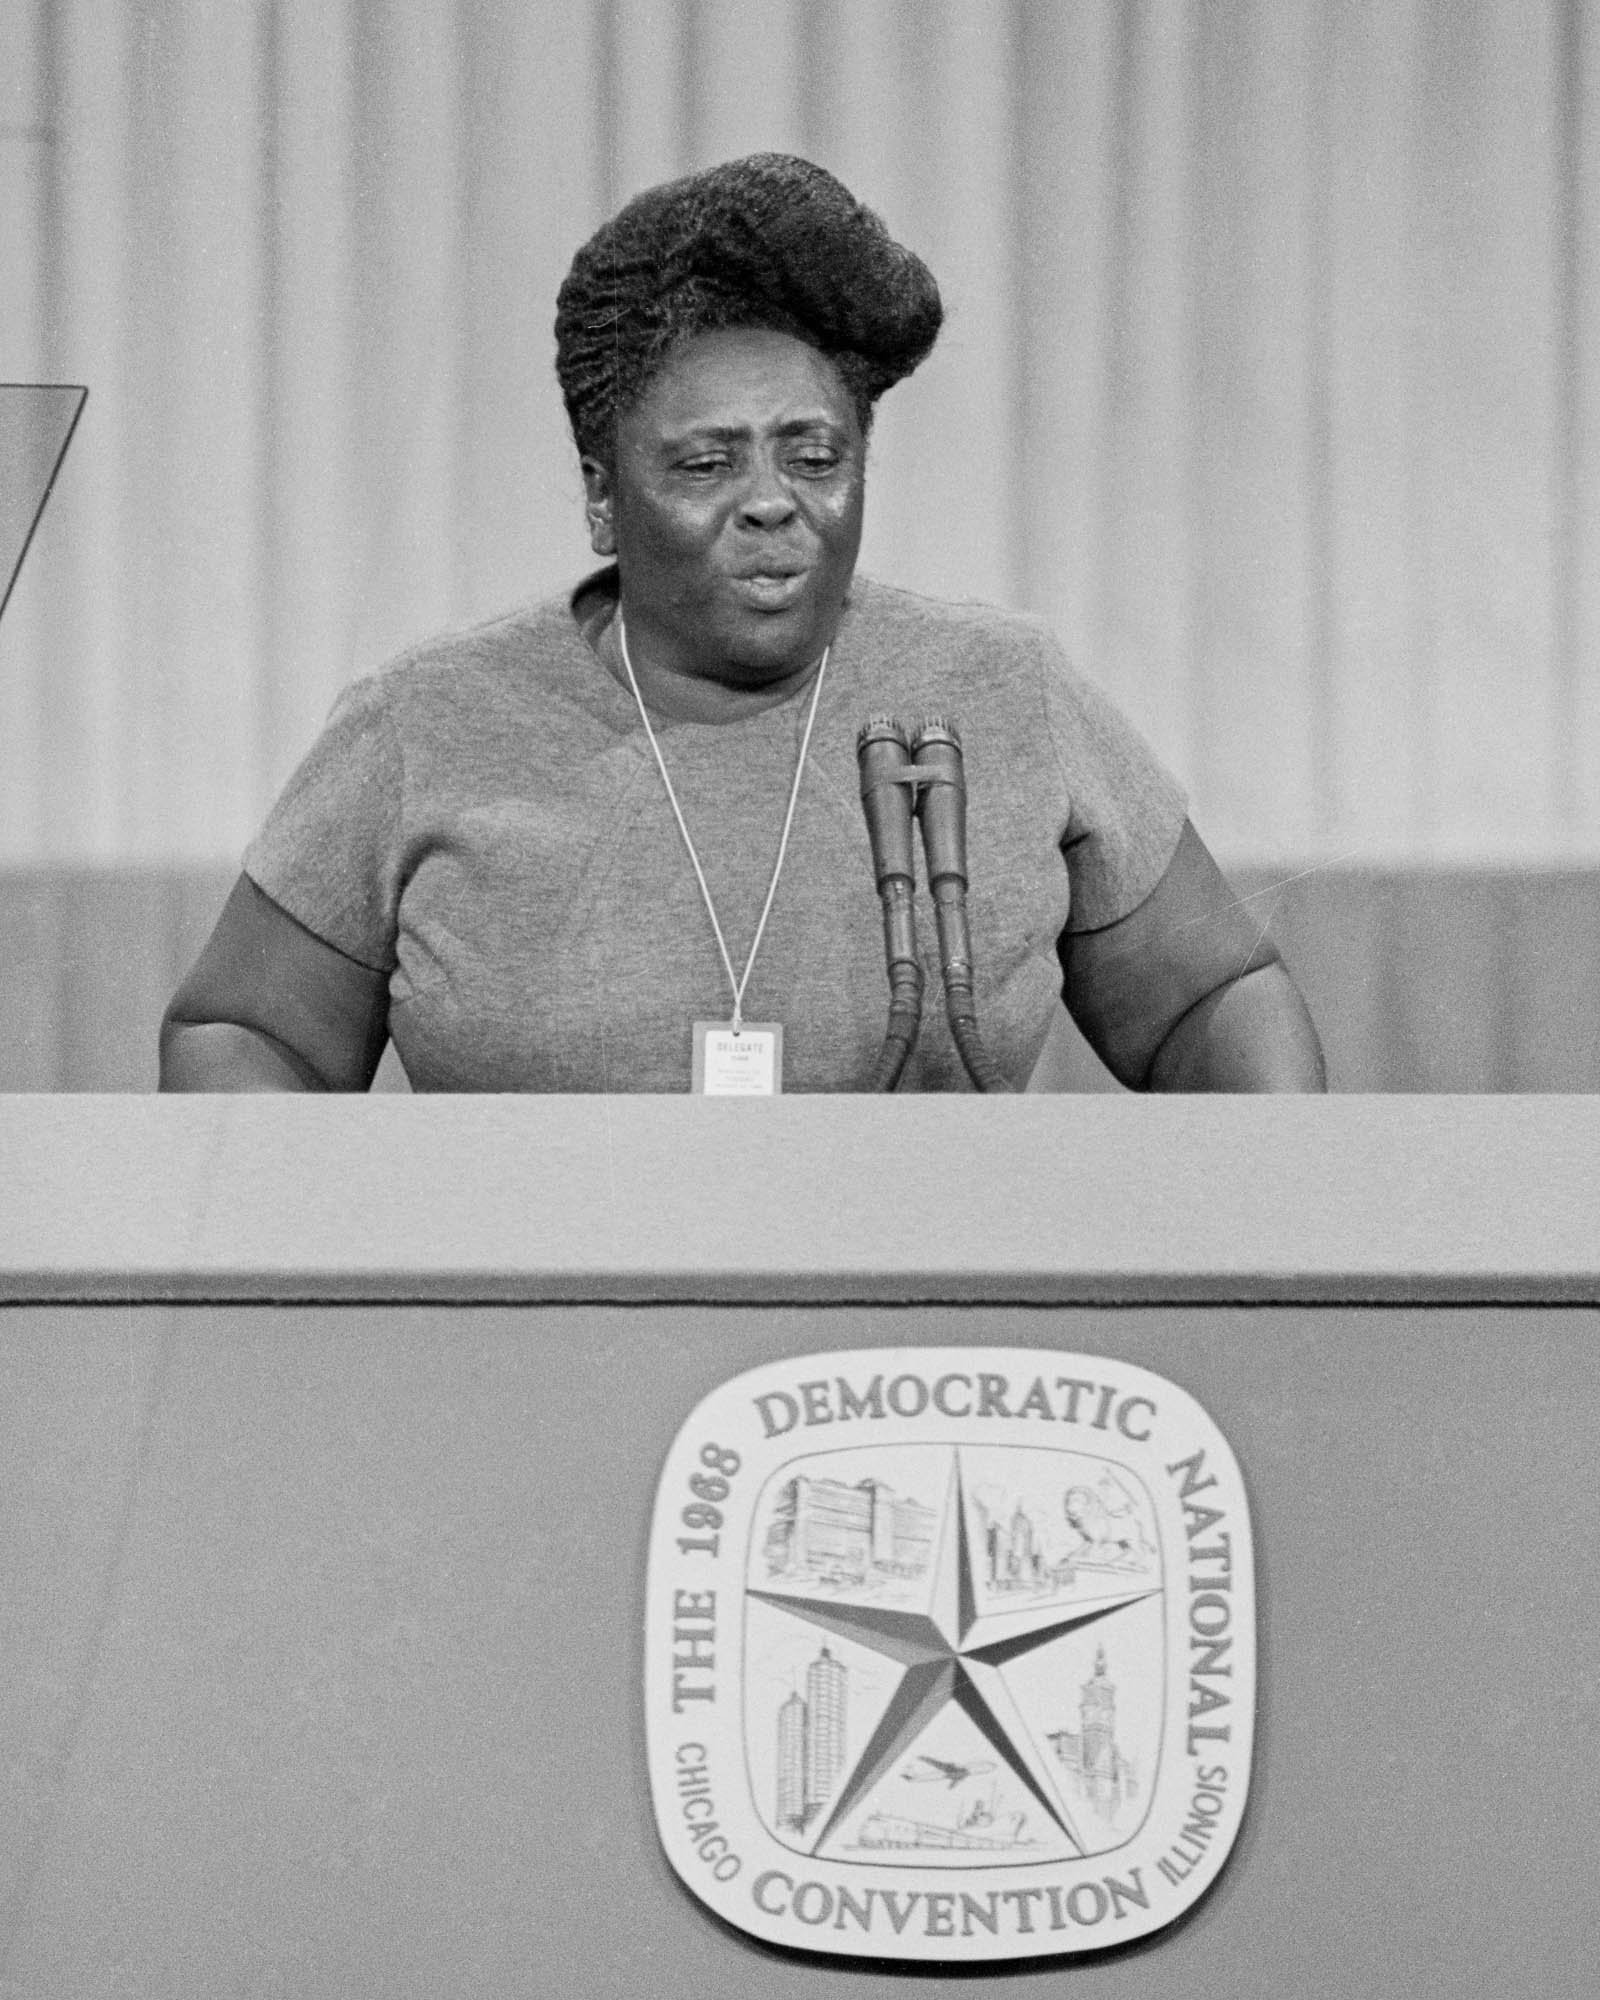 Fannie Lou Hamer Speaking from Podium